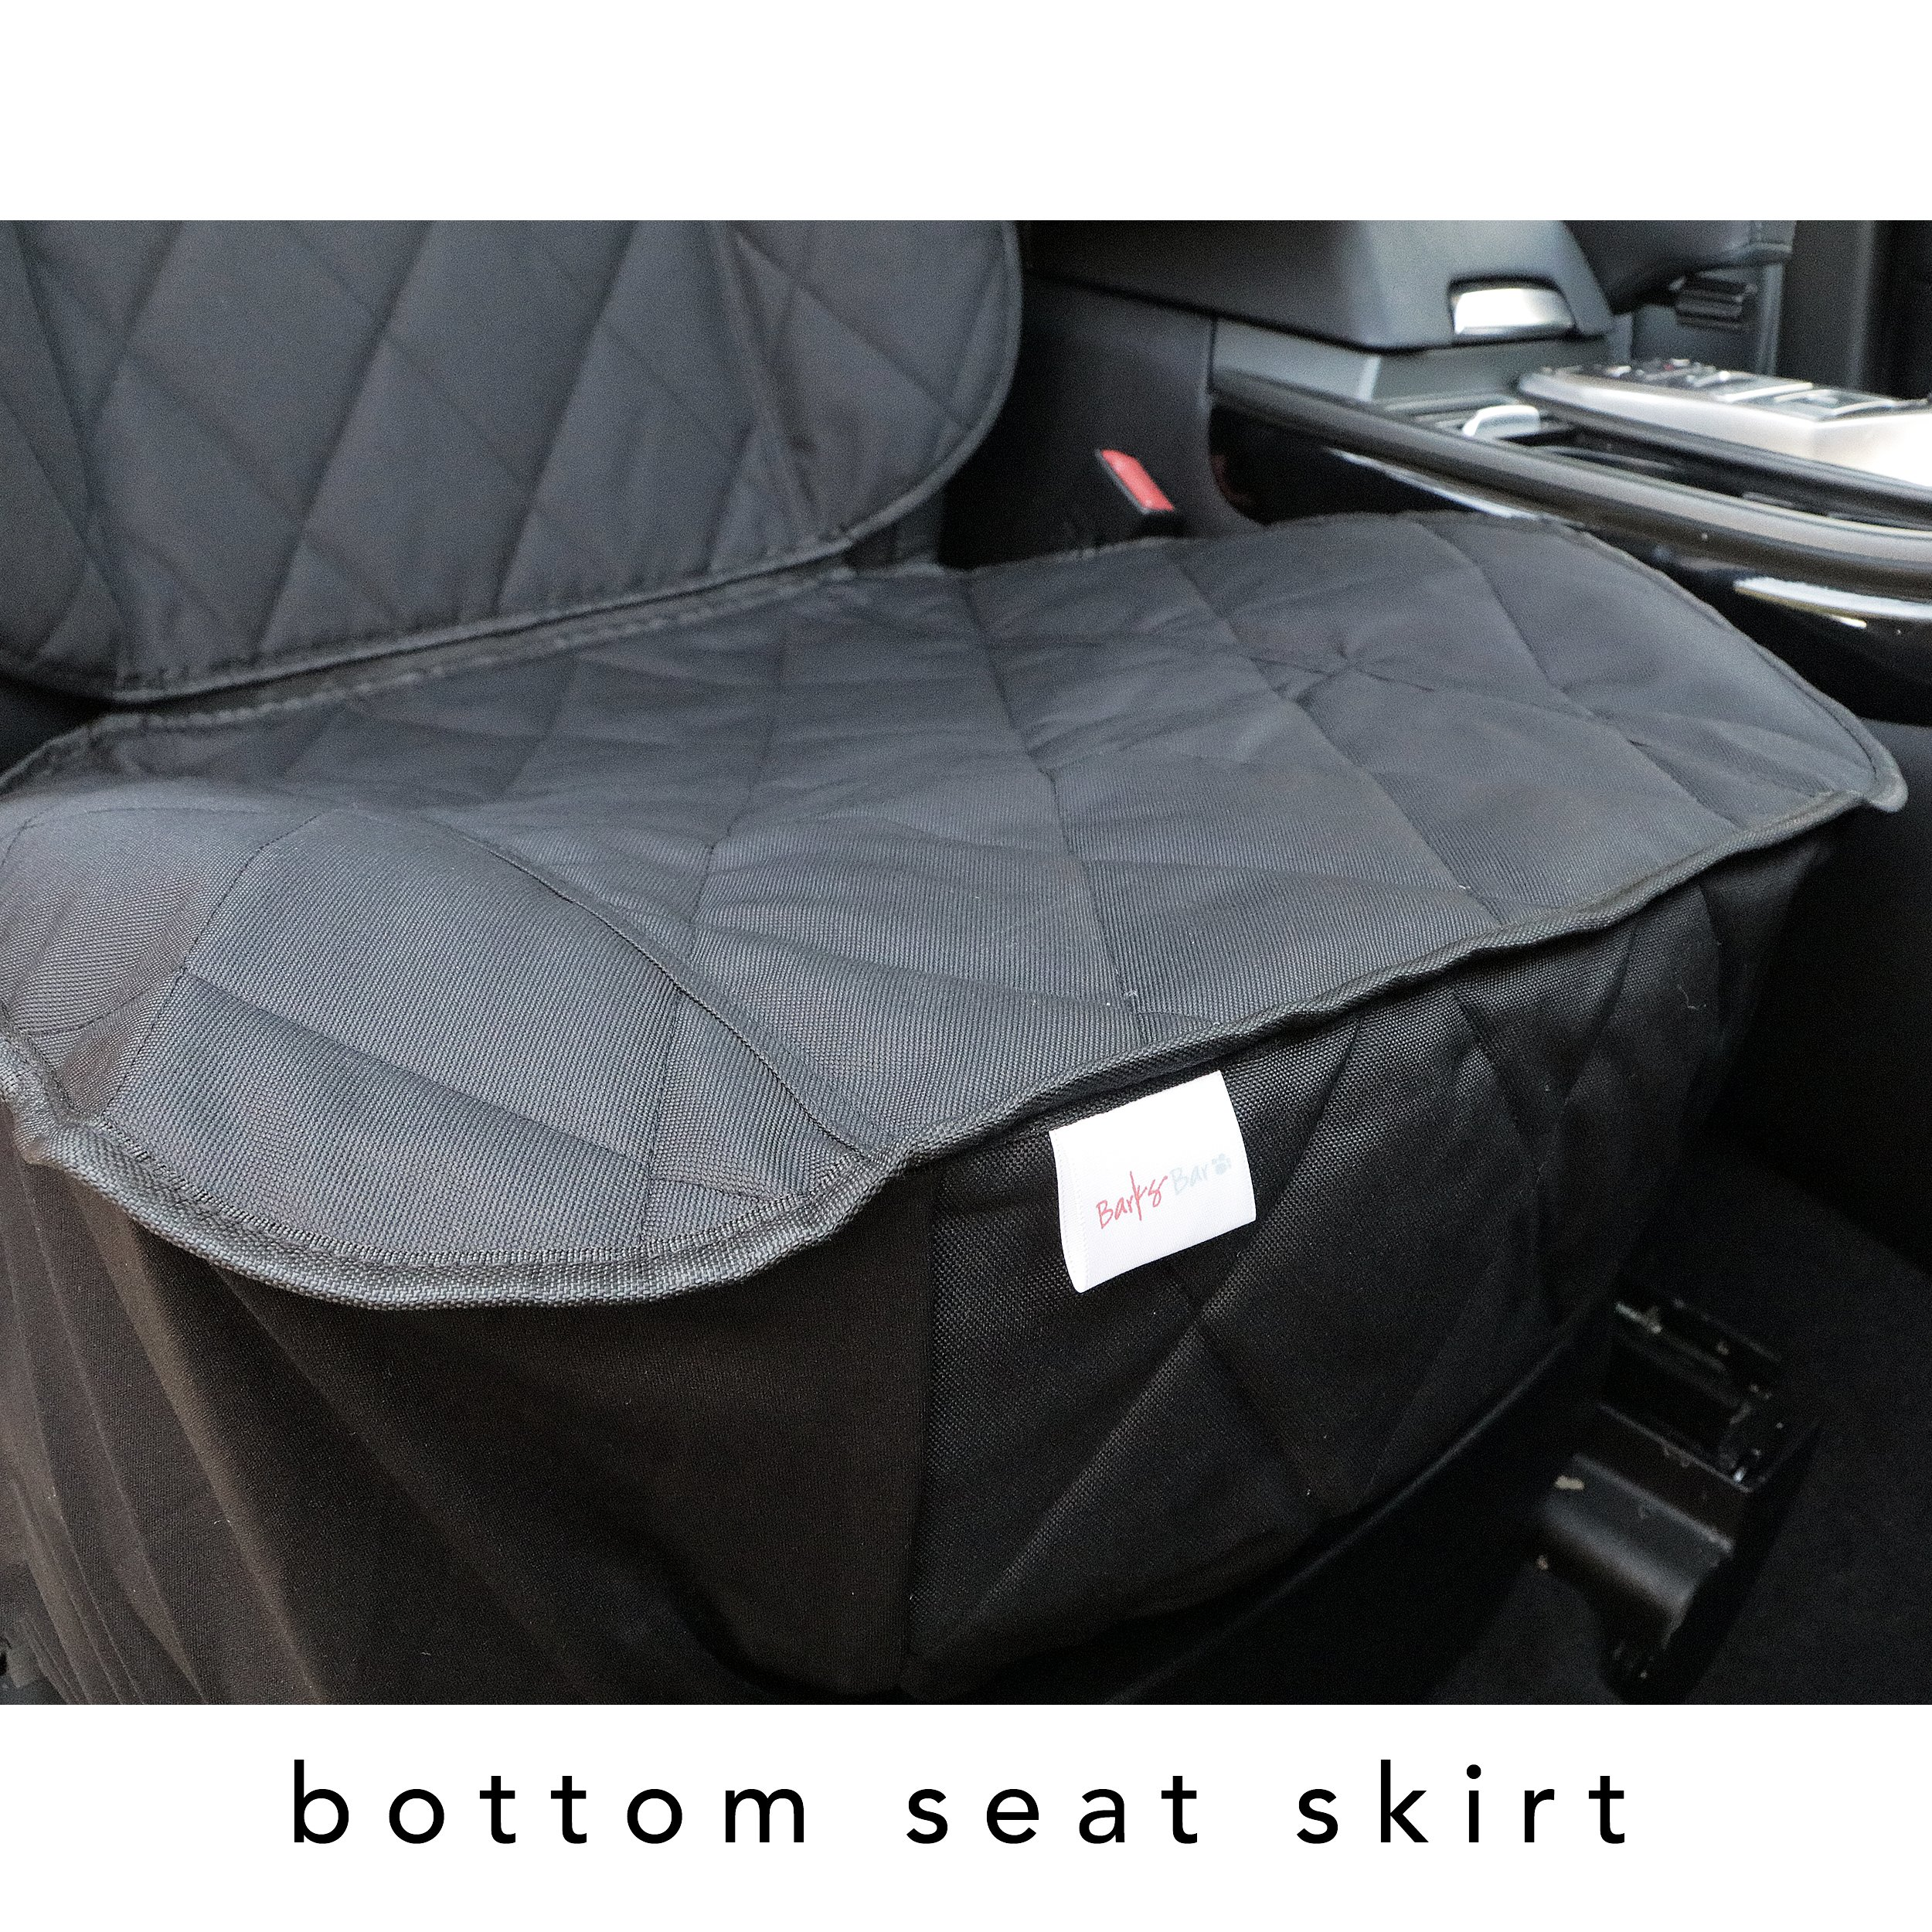 BarksBar Pet Front Seat Cover for Cars - Black, WaterProof & Nonslip Backing by BarksBar (Image #6)